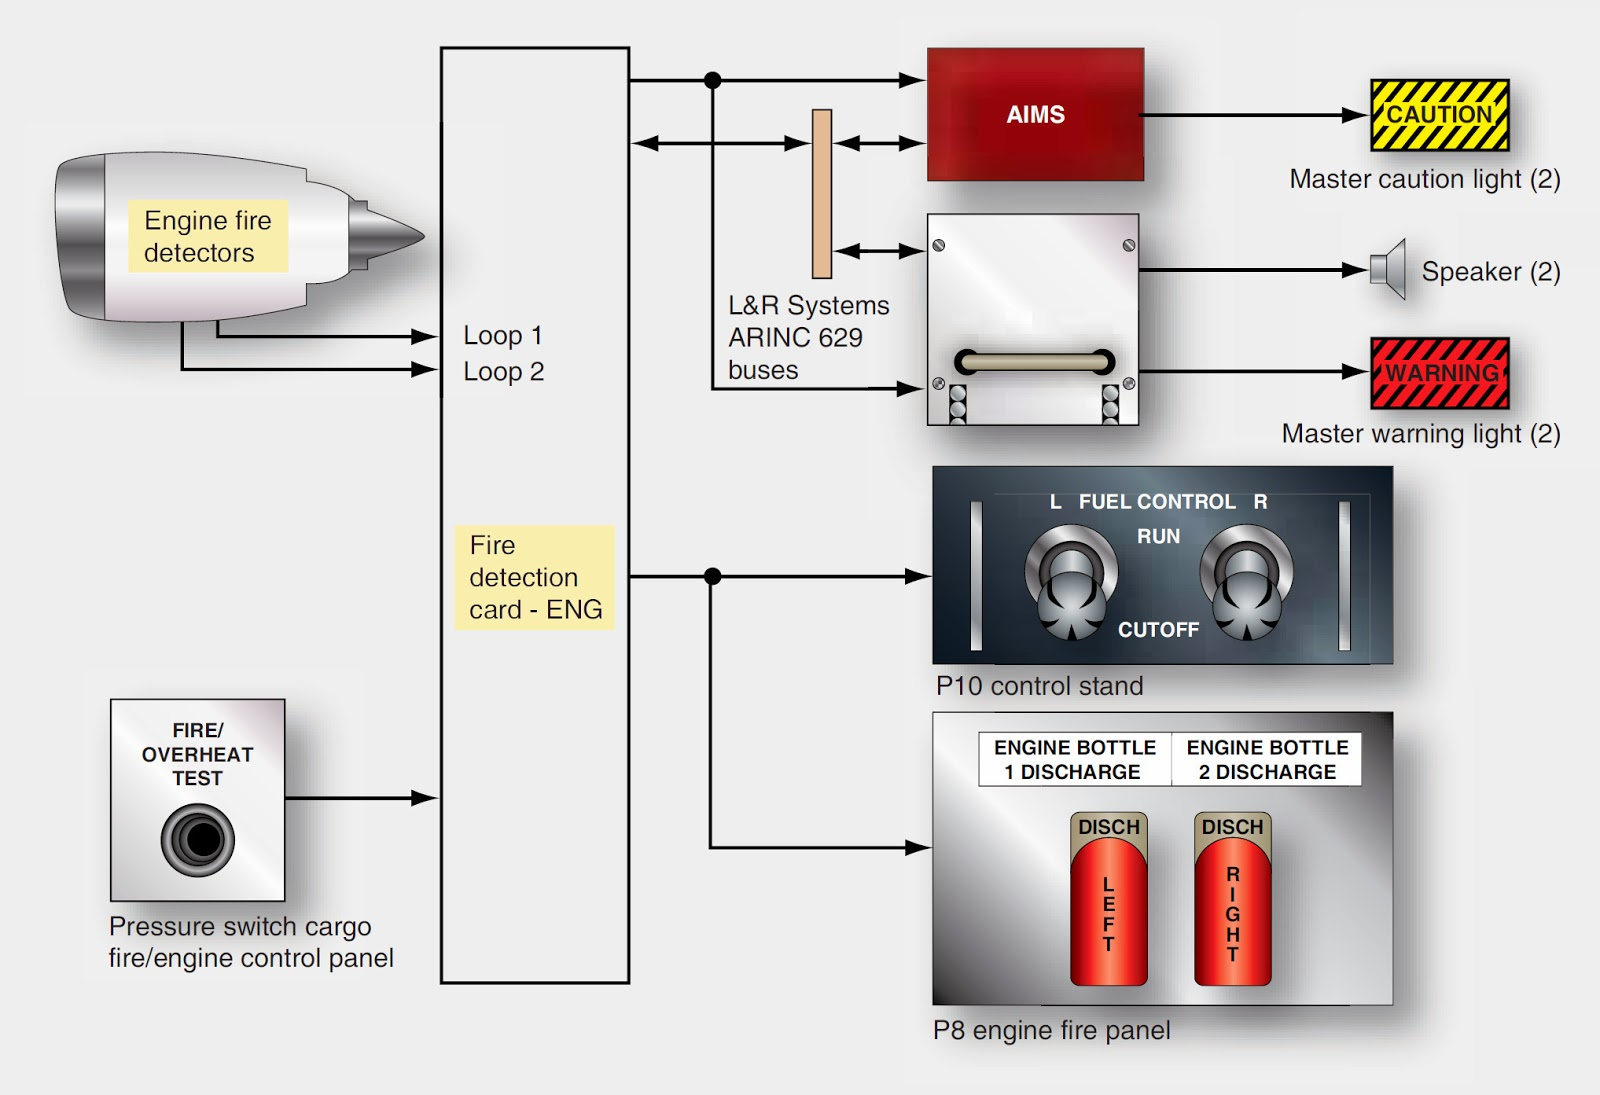 Wiring 2 Lights To One Switch Residential Electrical Symbols Light Switches 1 Power Source Aircraft Systems Boeing 777 Fire Detection And Extinguishing System